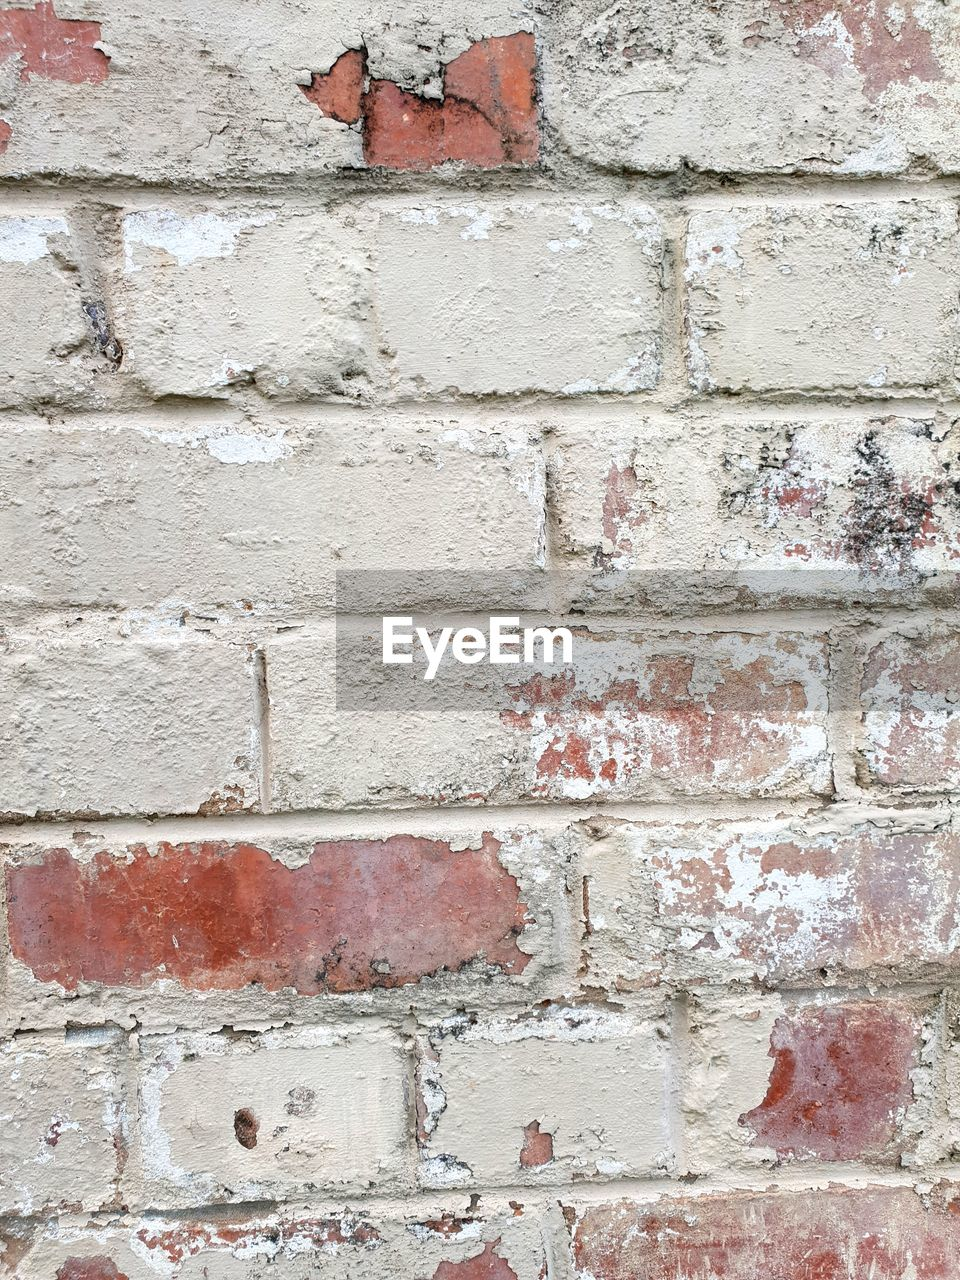 brick wall, brick, wall - building feature, wall, backgrounds, architecture, built structure, full frame, no people, textured, pattern, day, old, weathered, red, building exterior, rough, close-up, outdoors, damaged, concrete, deterioration, cement